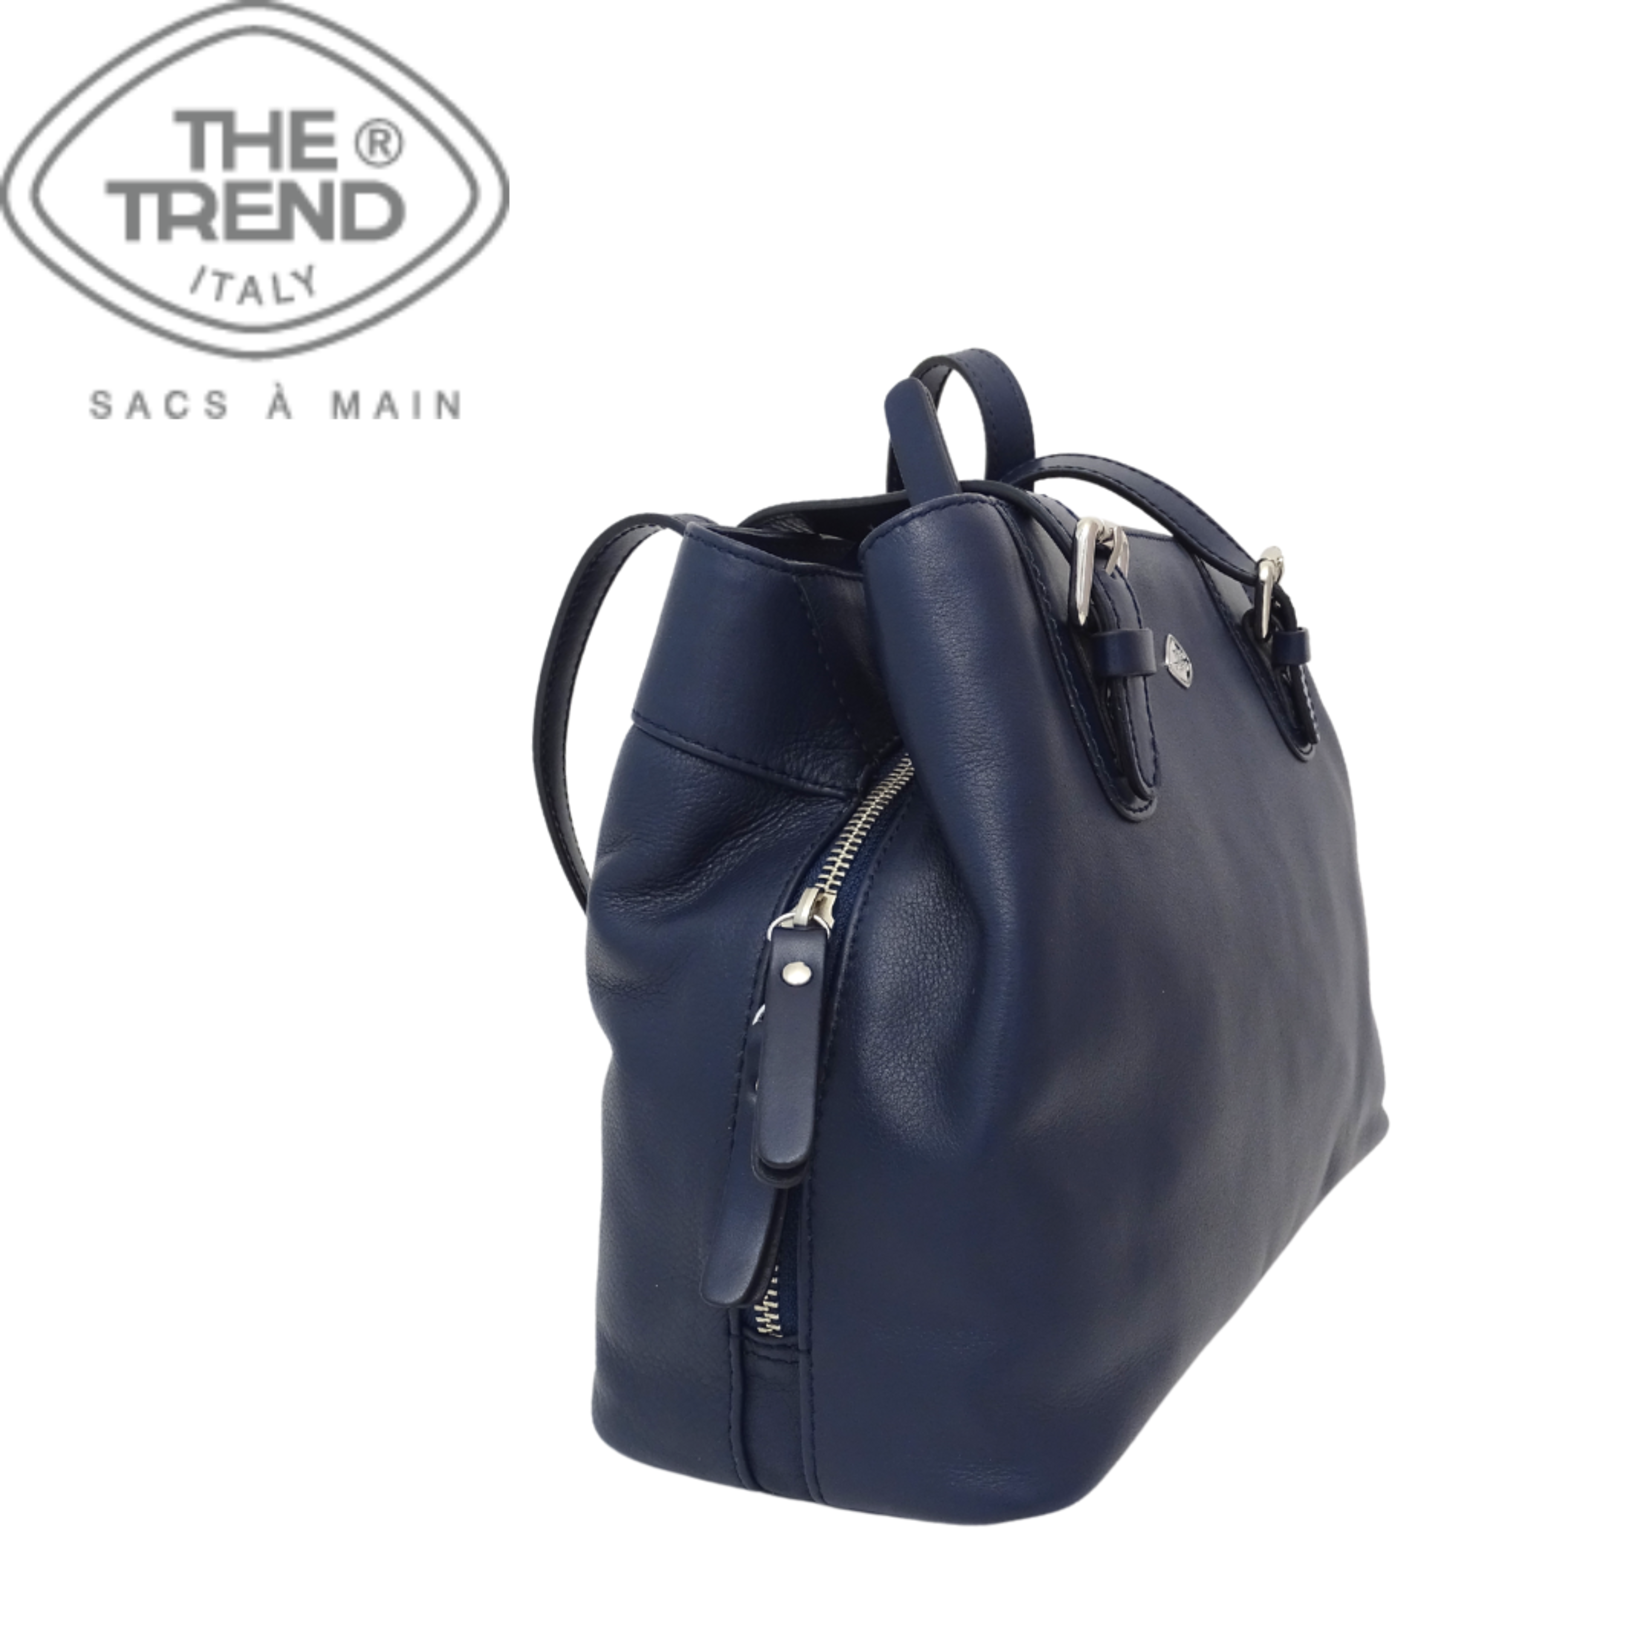 The Trend The Trend 584543 navy